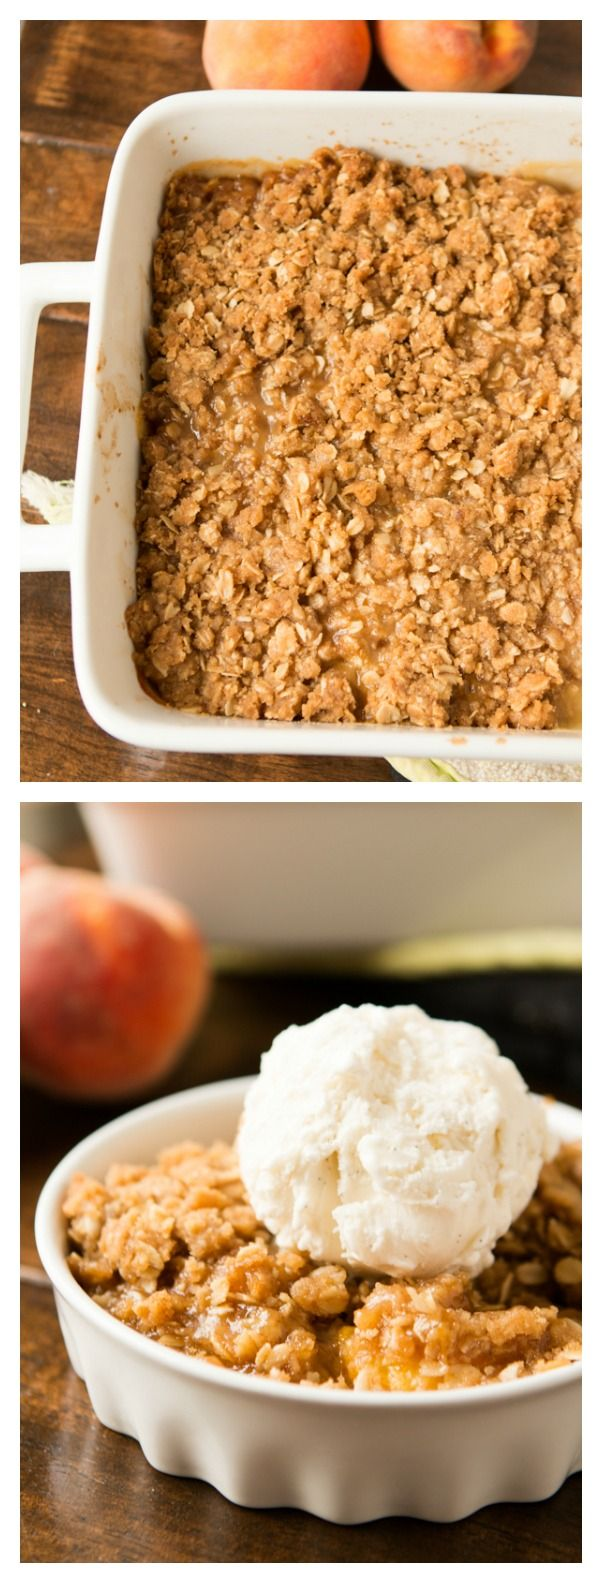 Dutch oven recipes apple cobbler easy